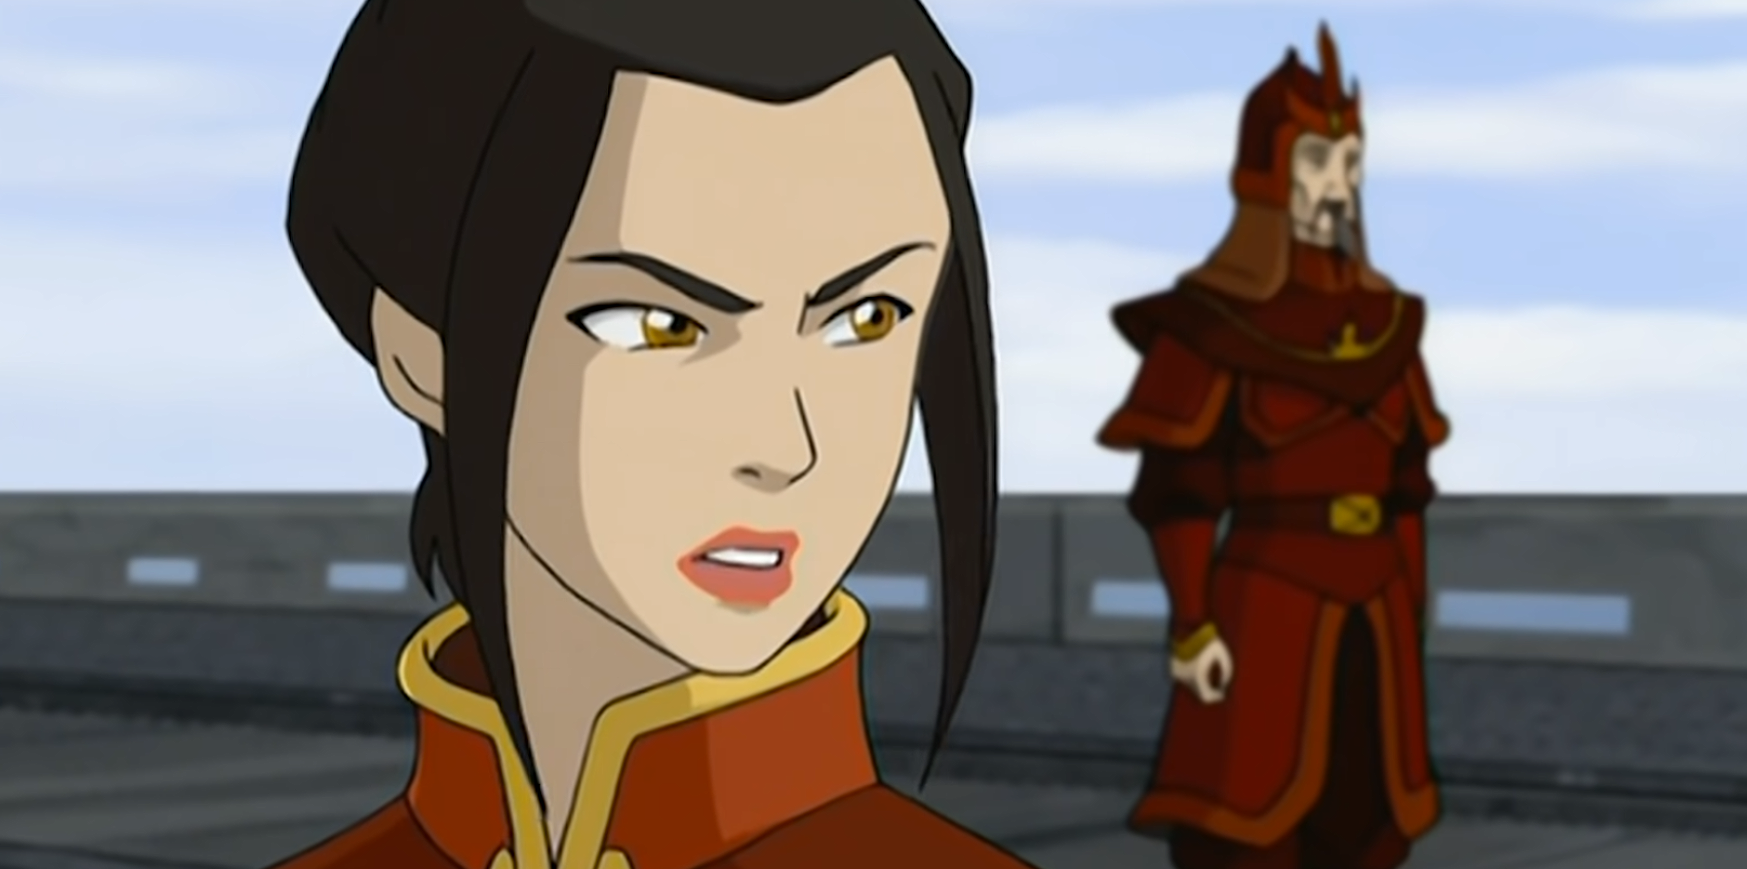 Azula looking angry in Avatar